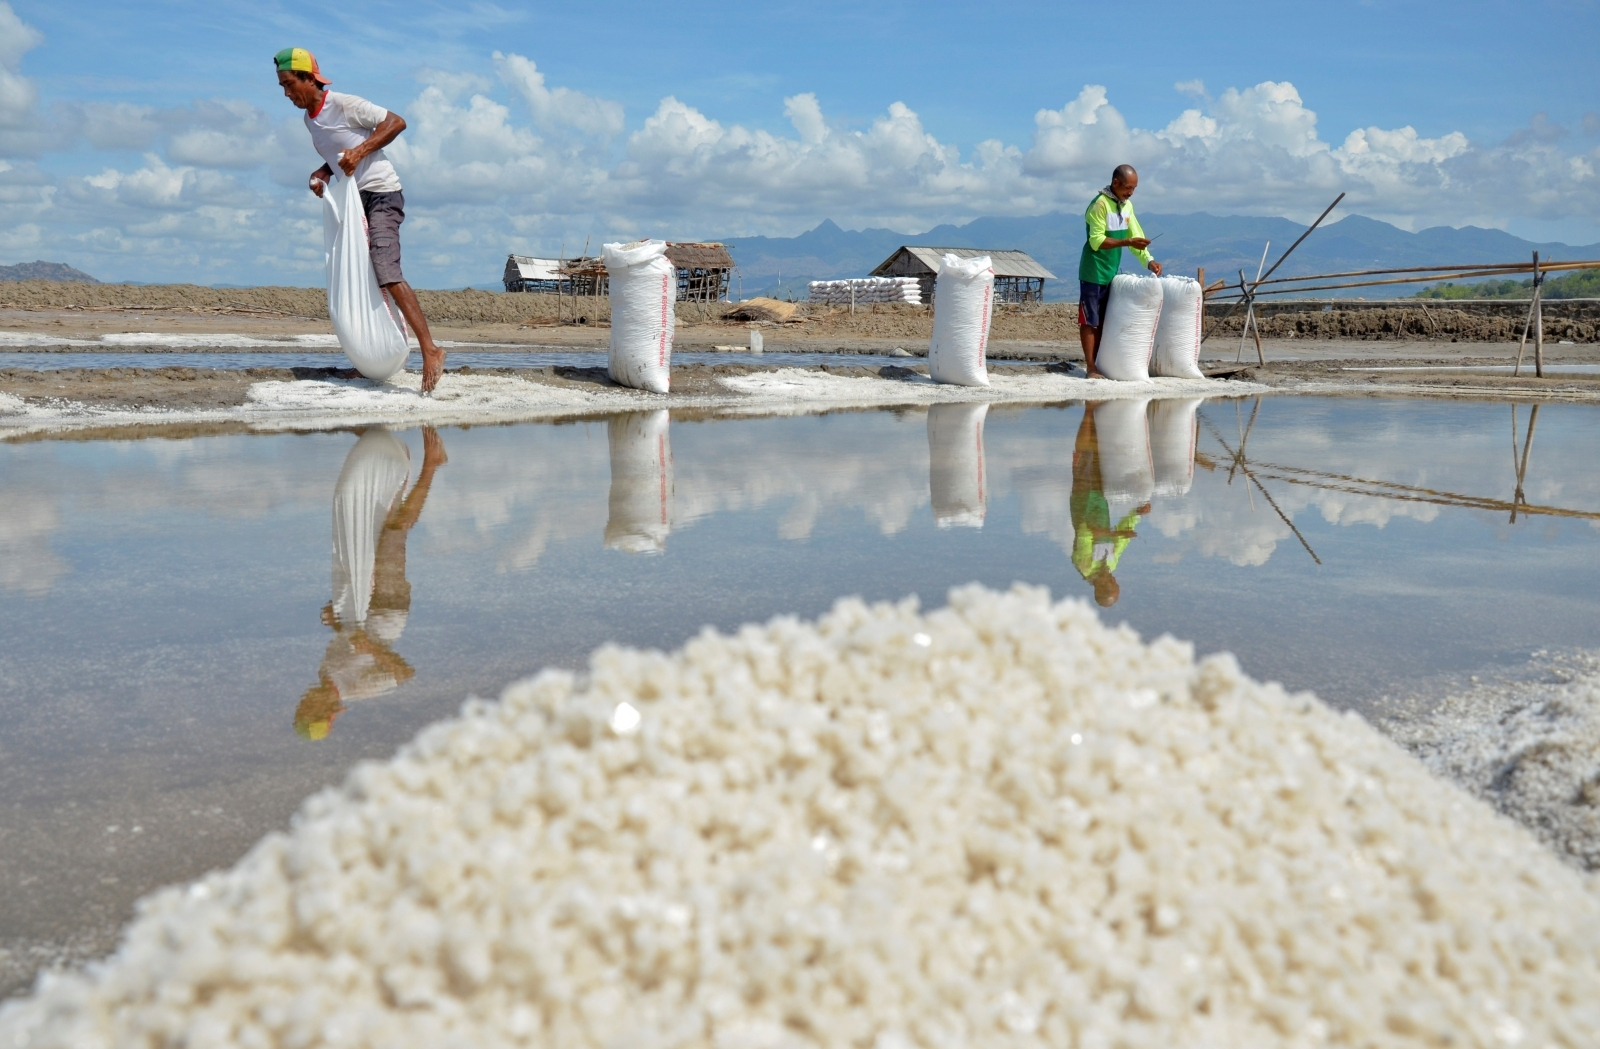 Indonesia salt scarcity